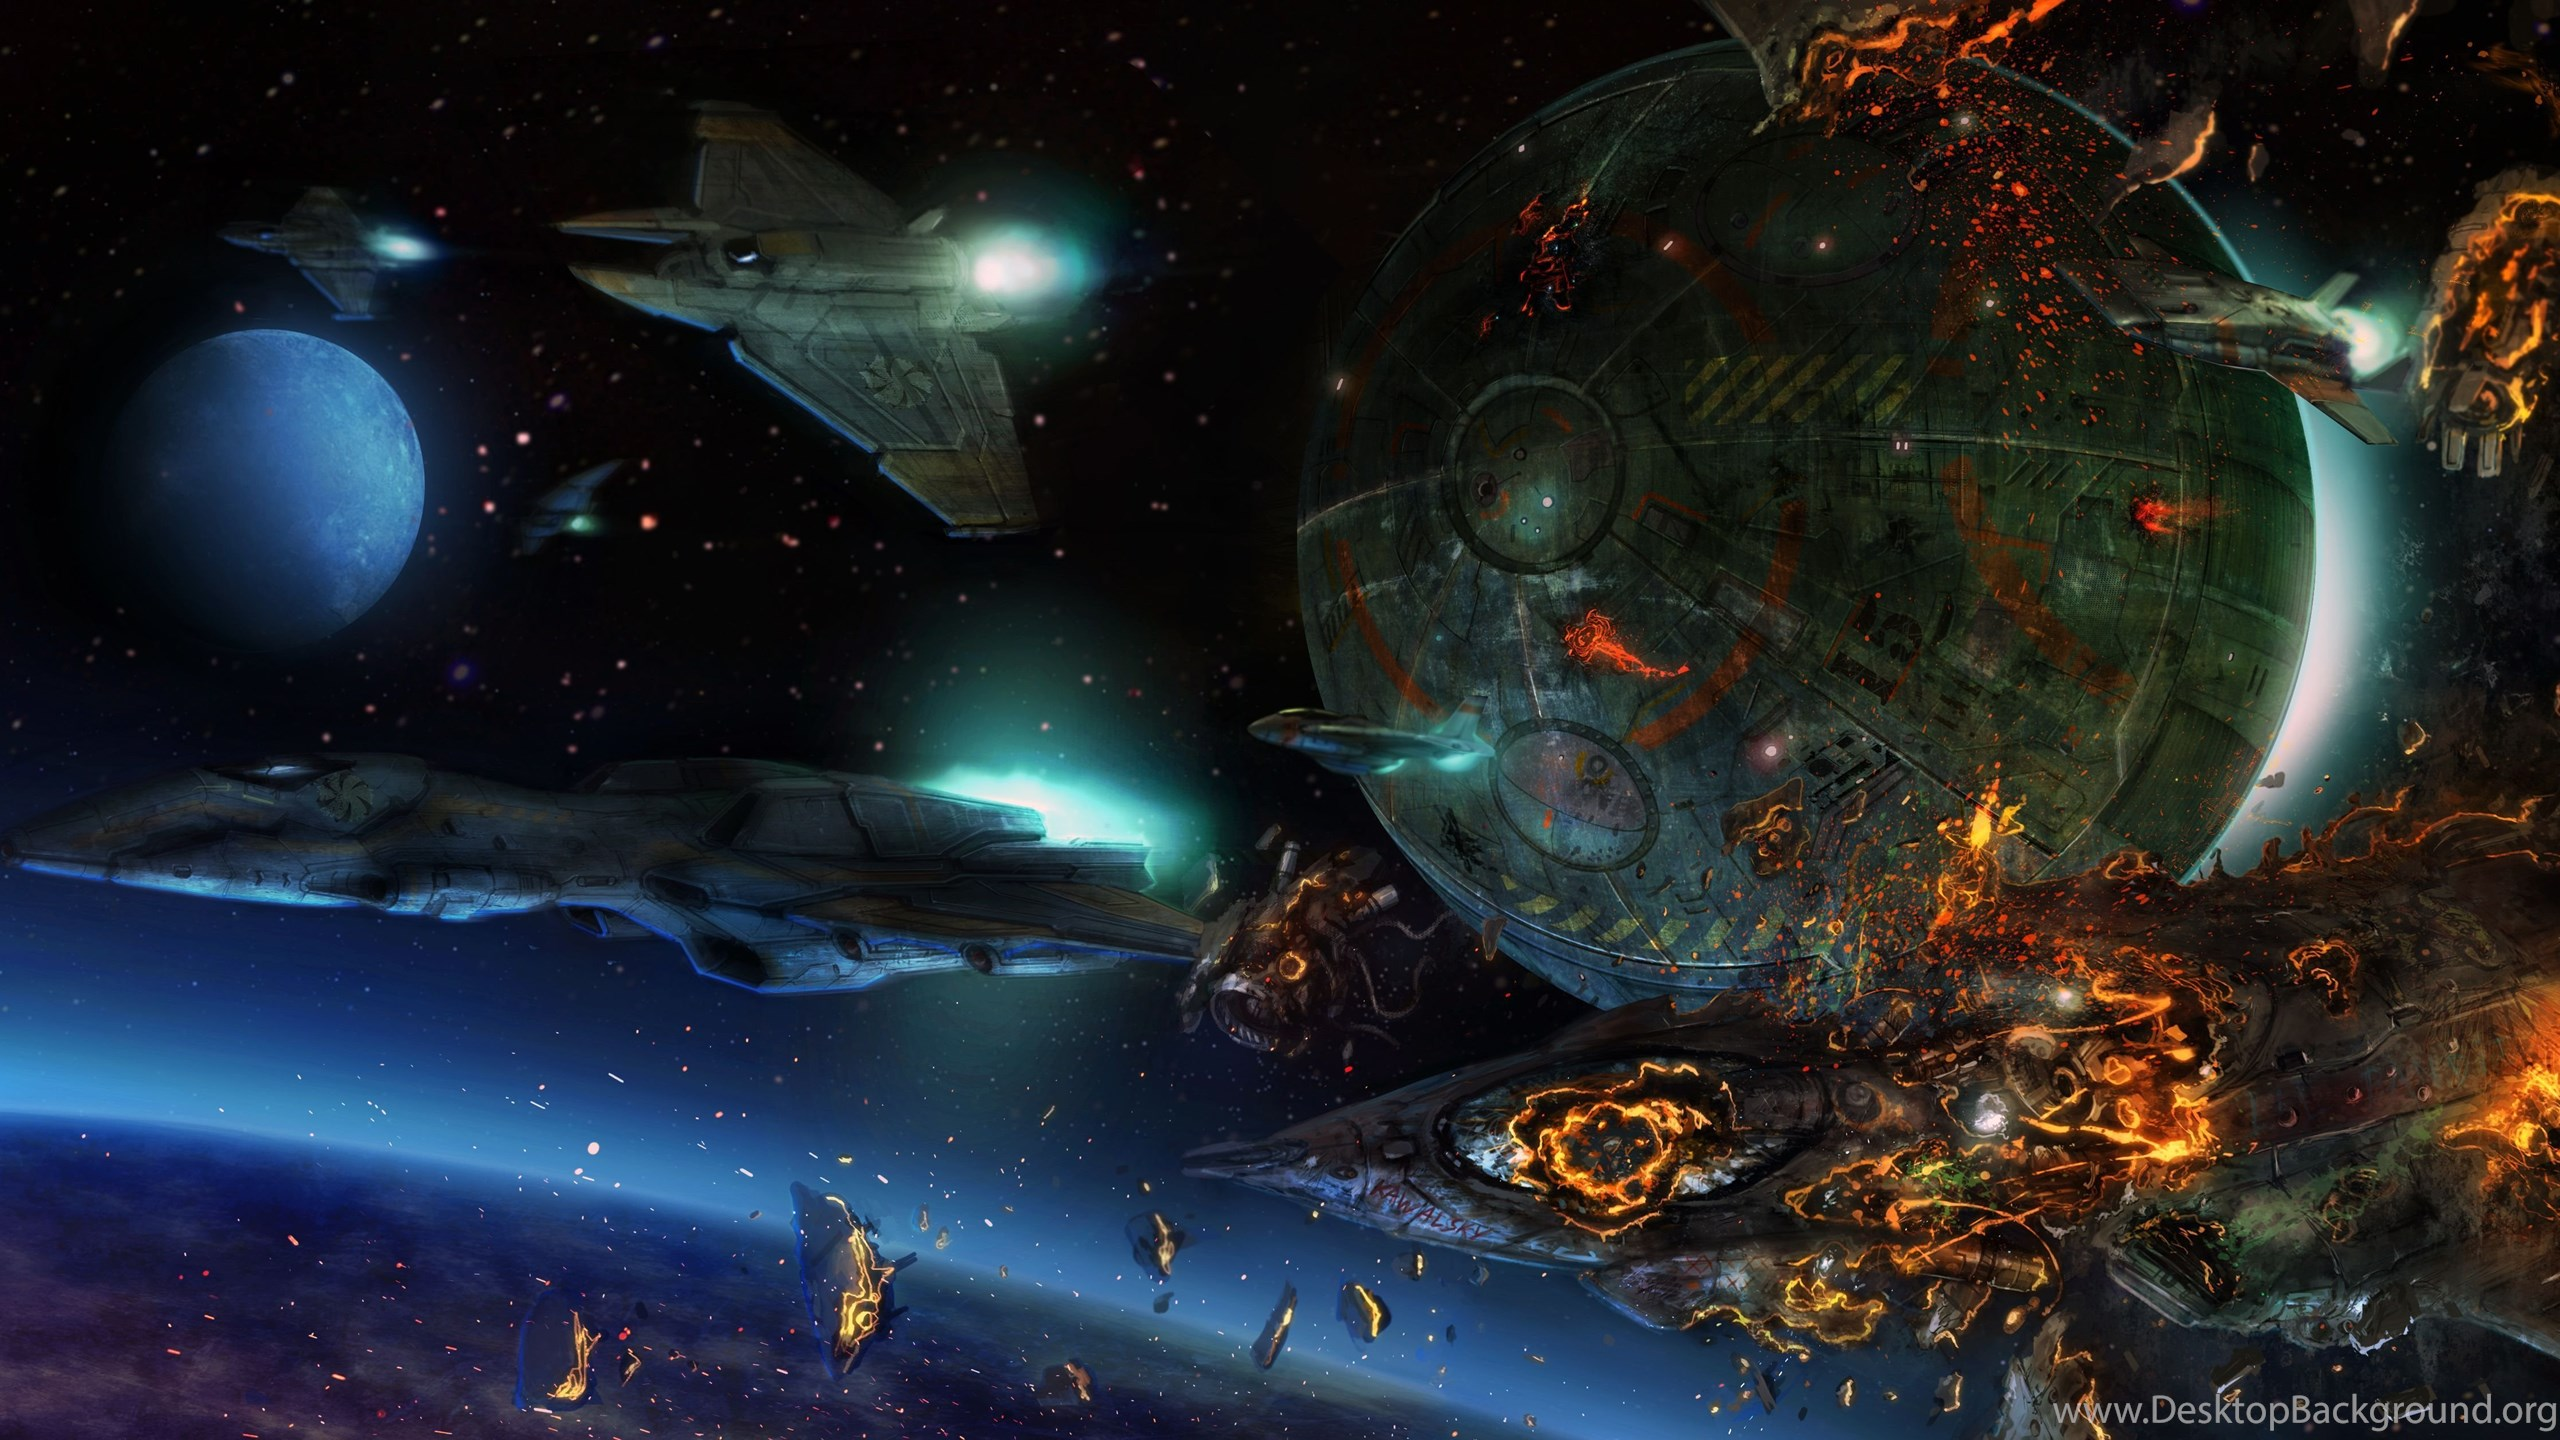 wallpapers technics fantasy ships fantasy space image desktop background